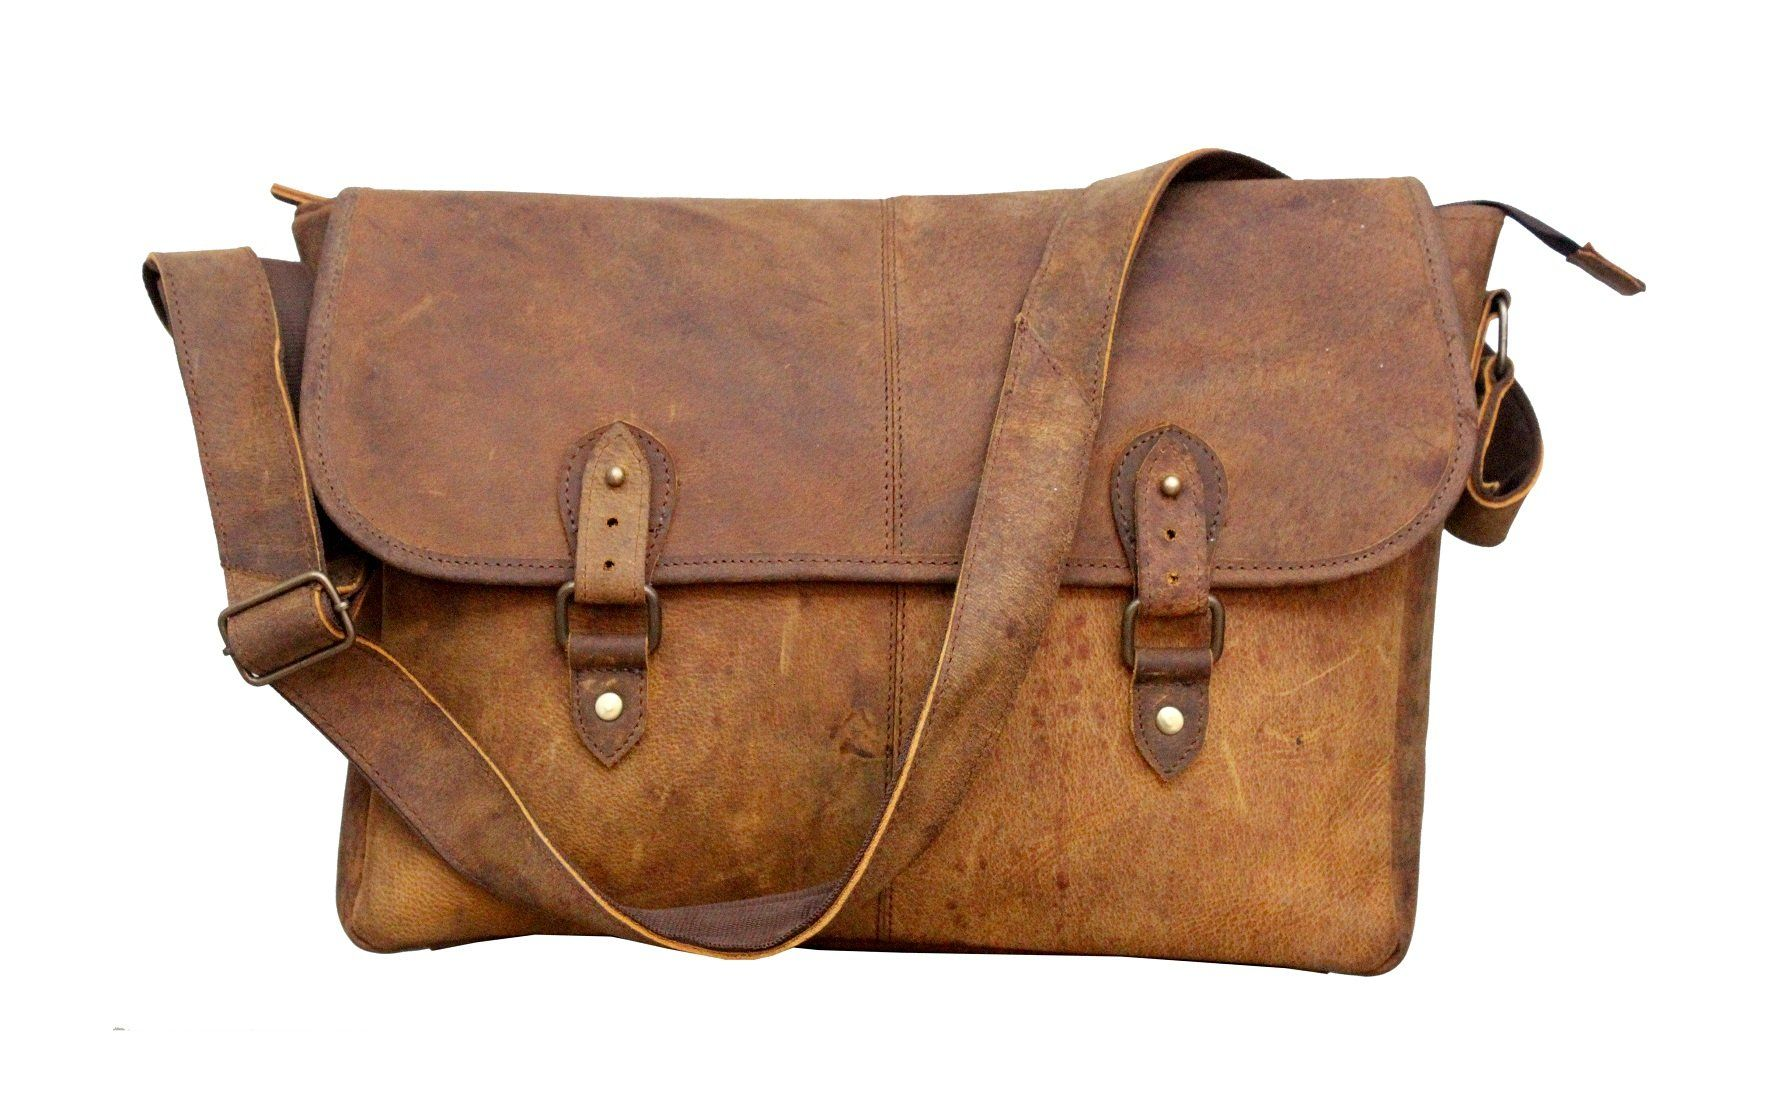 In India Real Buffalo Leather Regular Use Stylish Hunter Messenger Bag Fits Laptop Upto 15 6 Inches